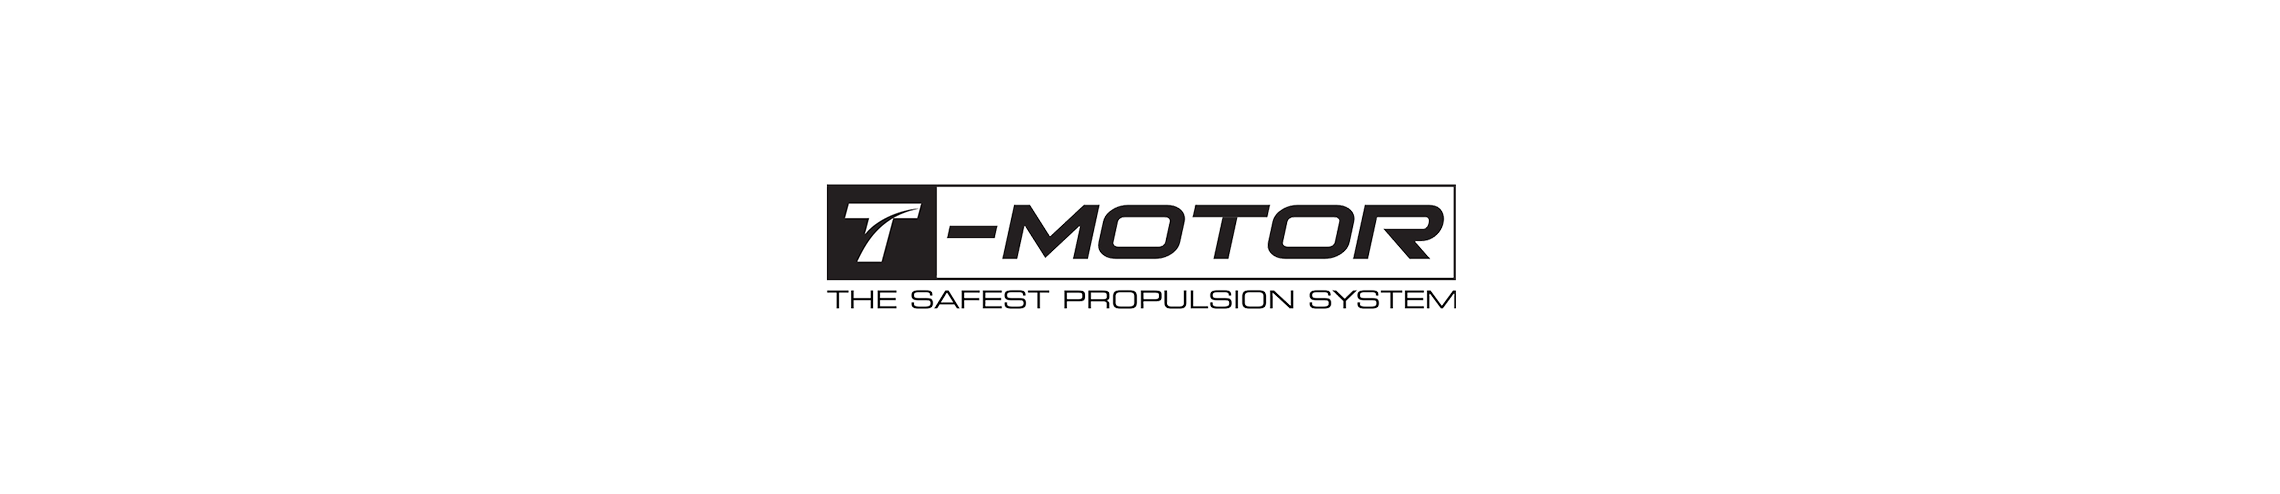 tmotor fpv banner promotion shop description mantisfpv